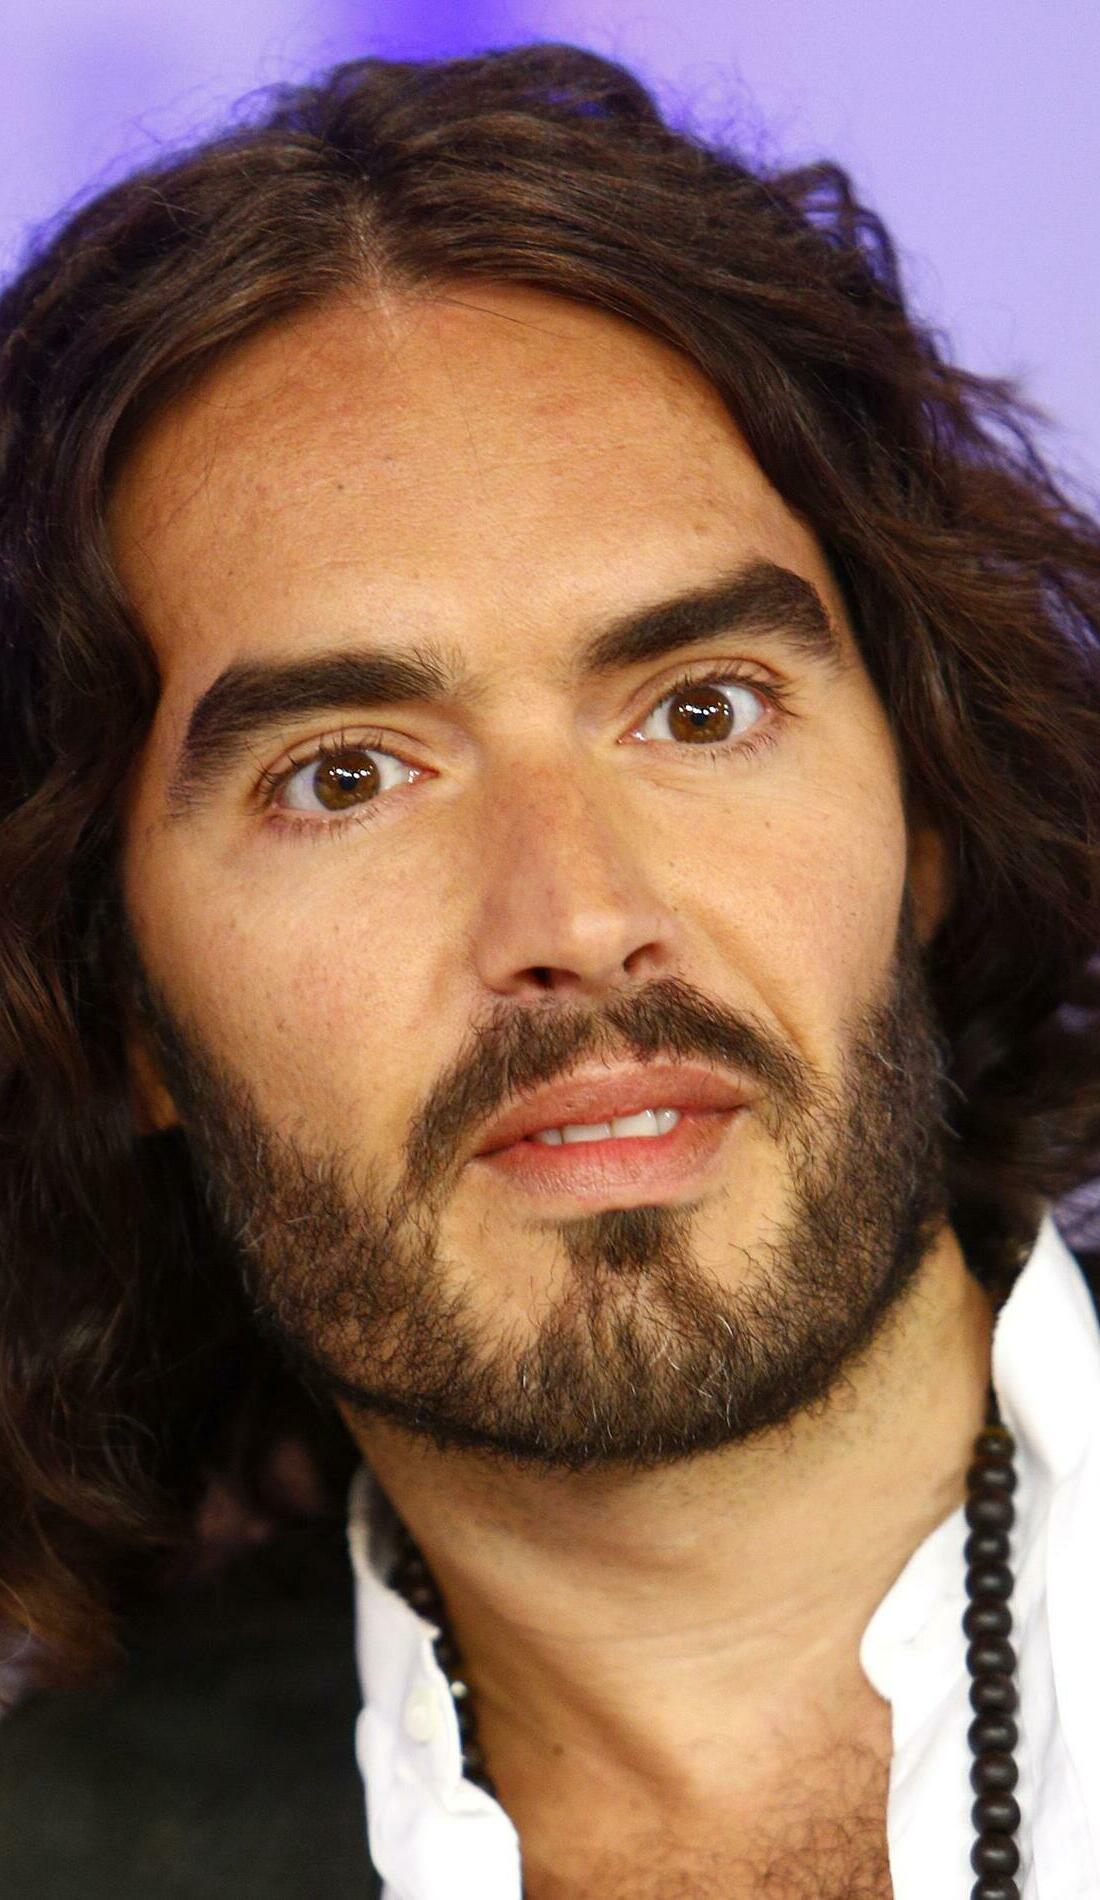 A Russell Brand live event